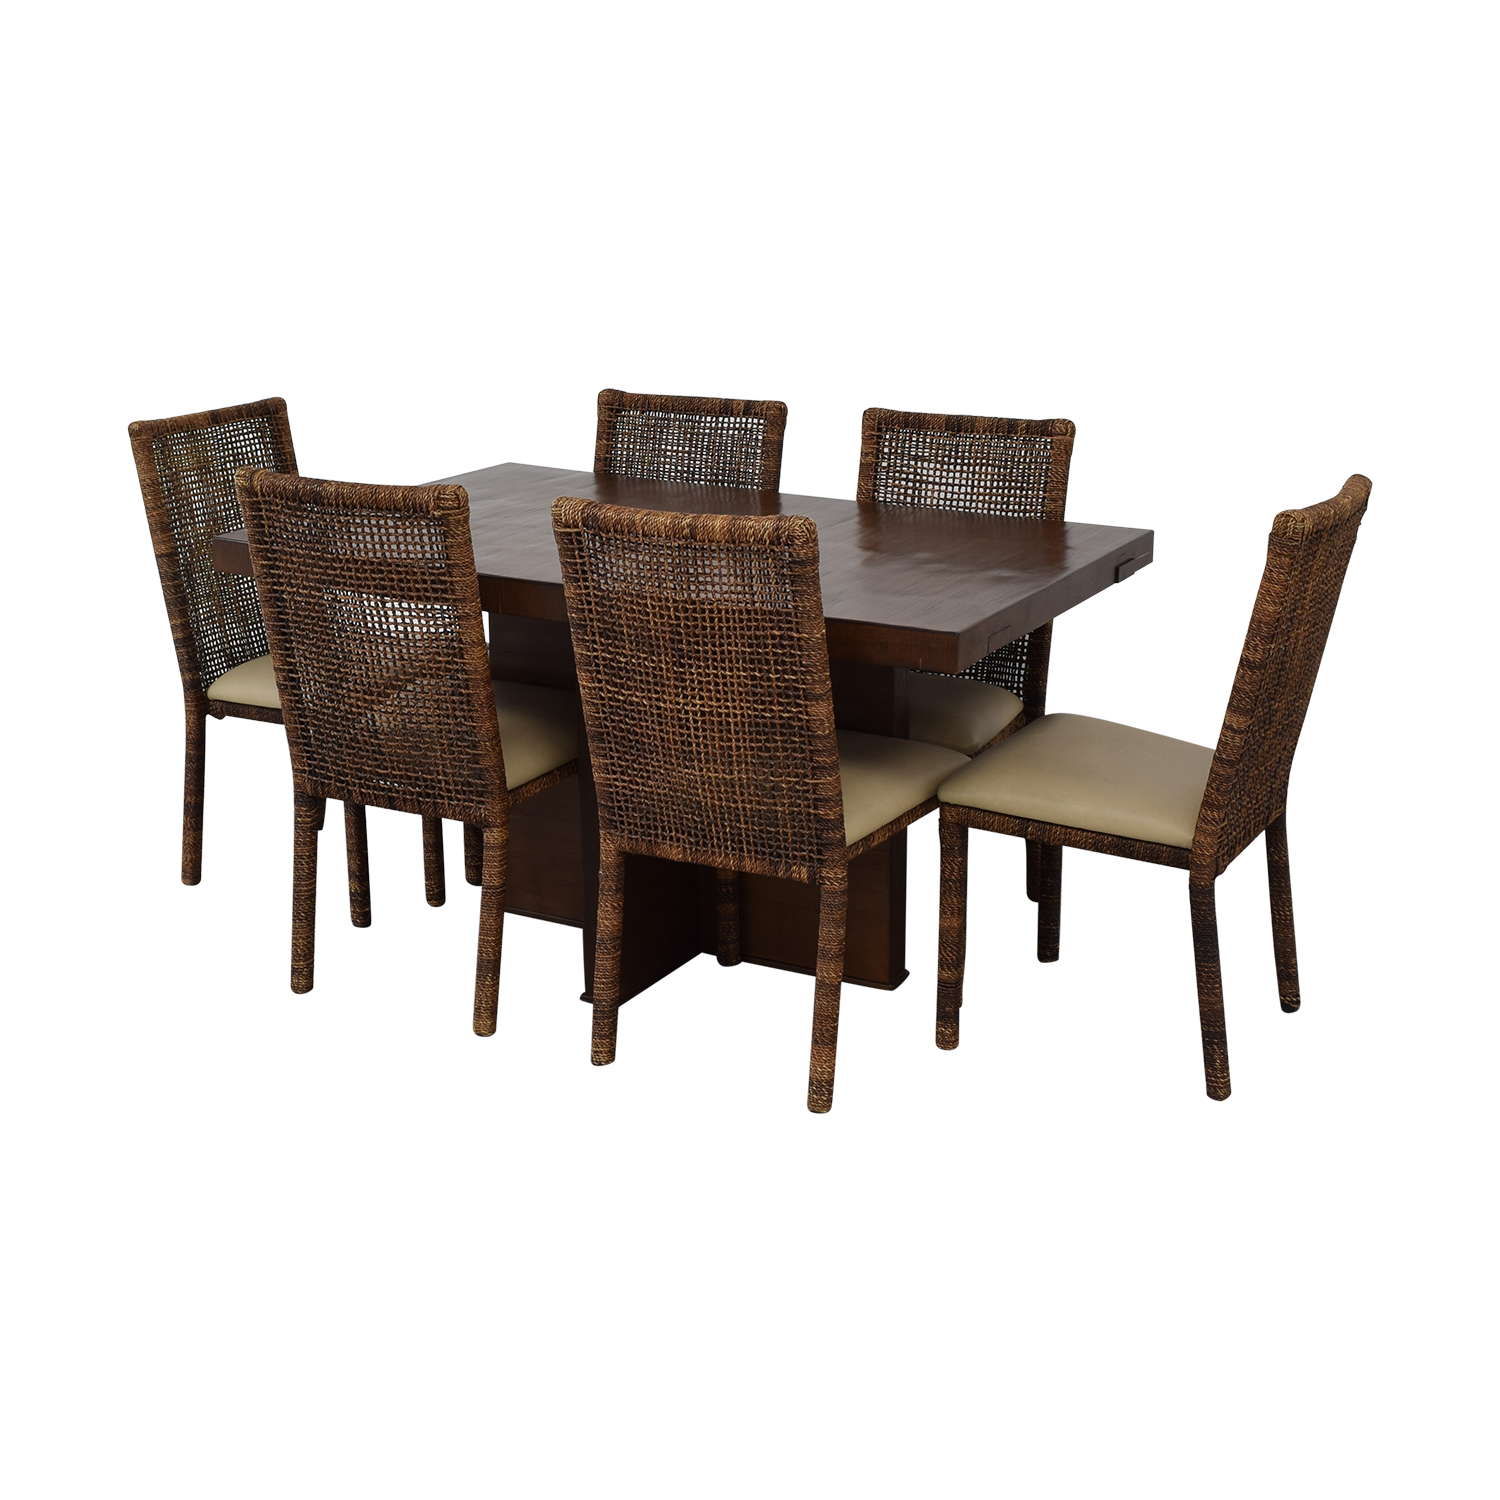 Upholstered Wicker Dining Chairs With Extendable Table used